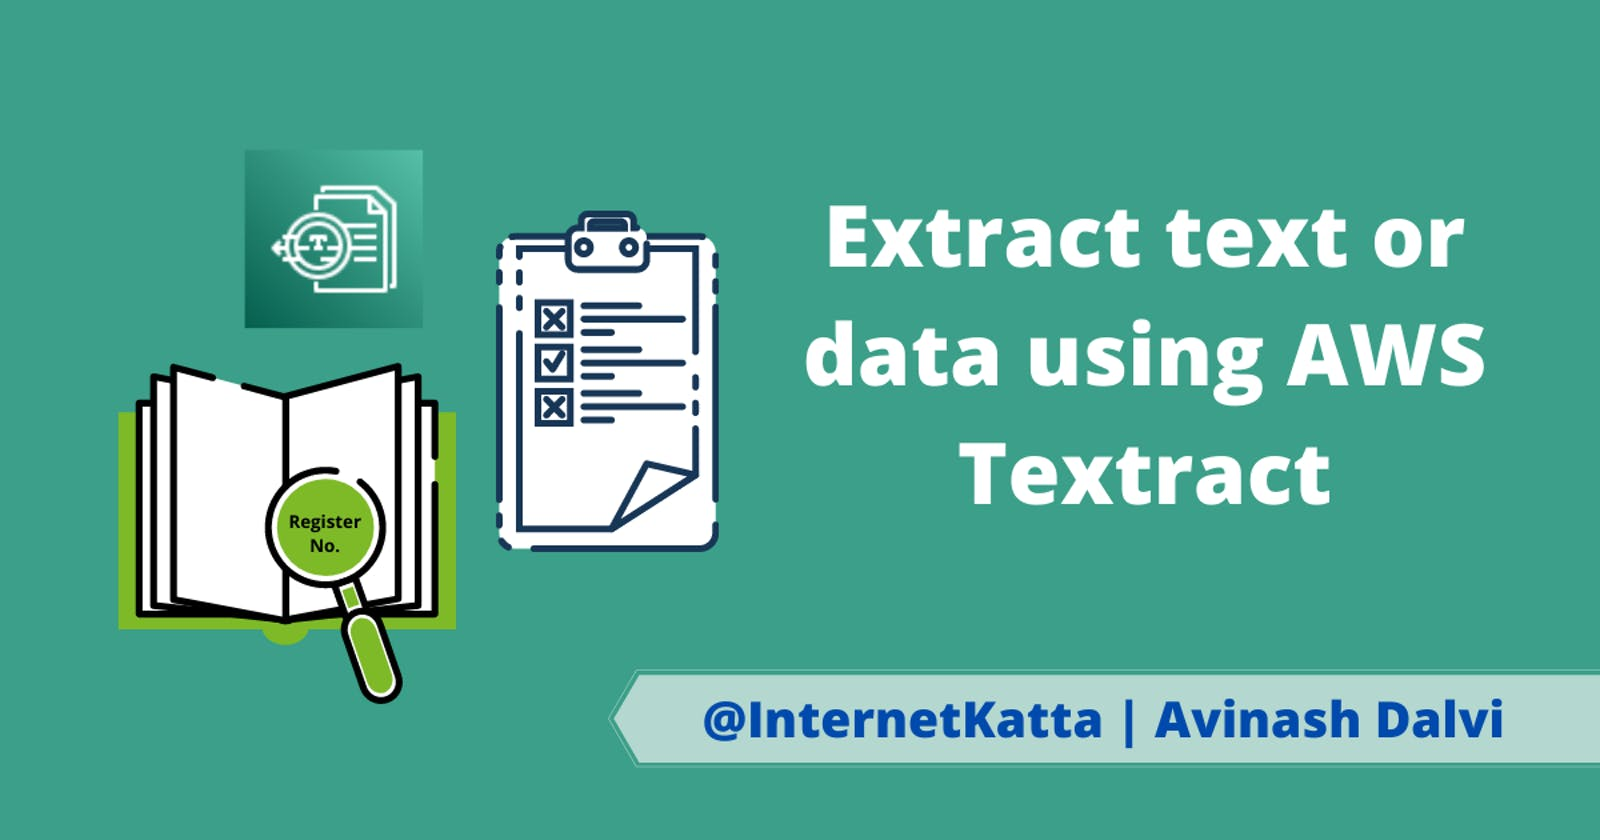 Extract text or data using AWS Textract